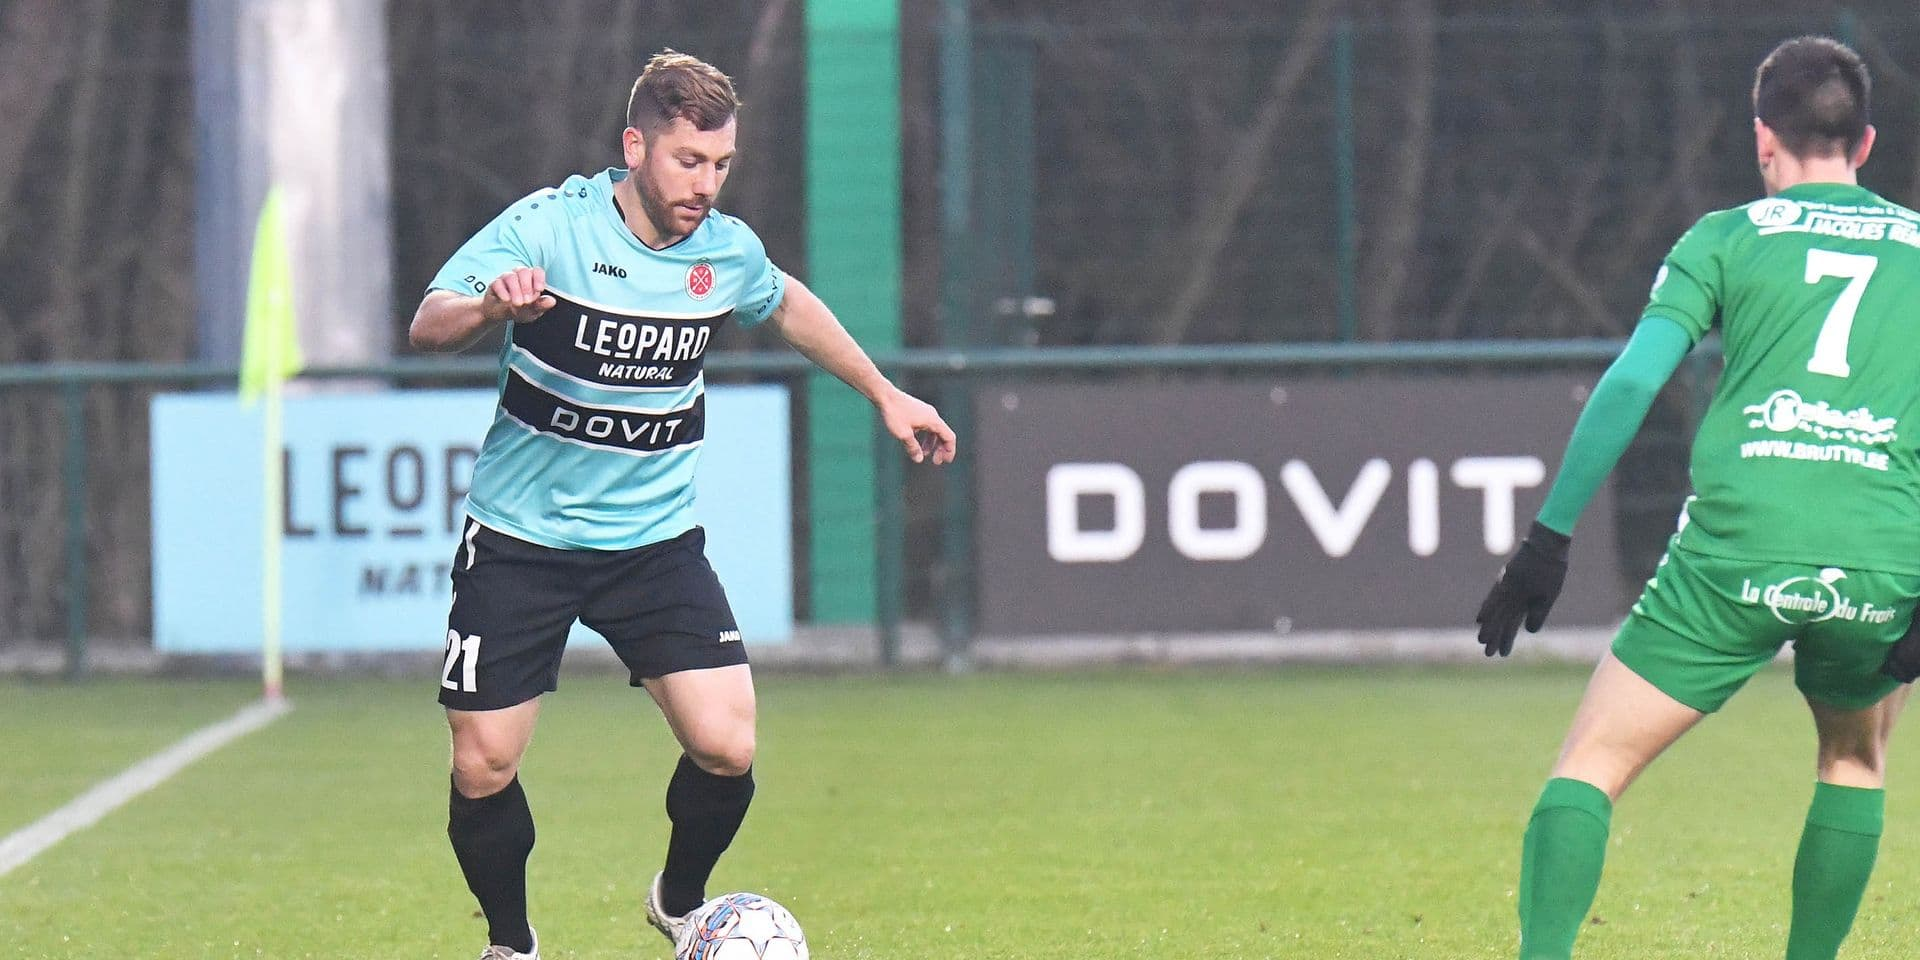 D1 amateurs: Victoire sans discussion pour Virton